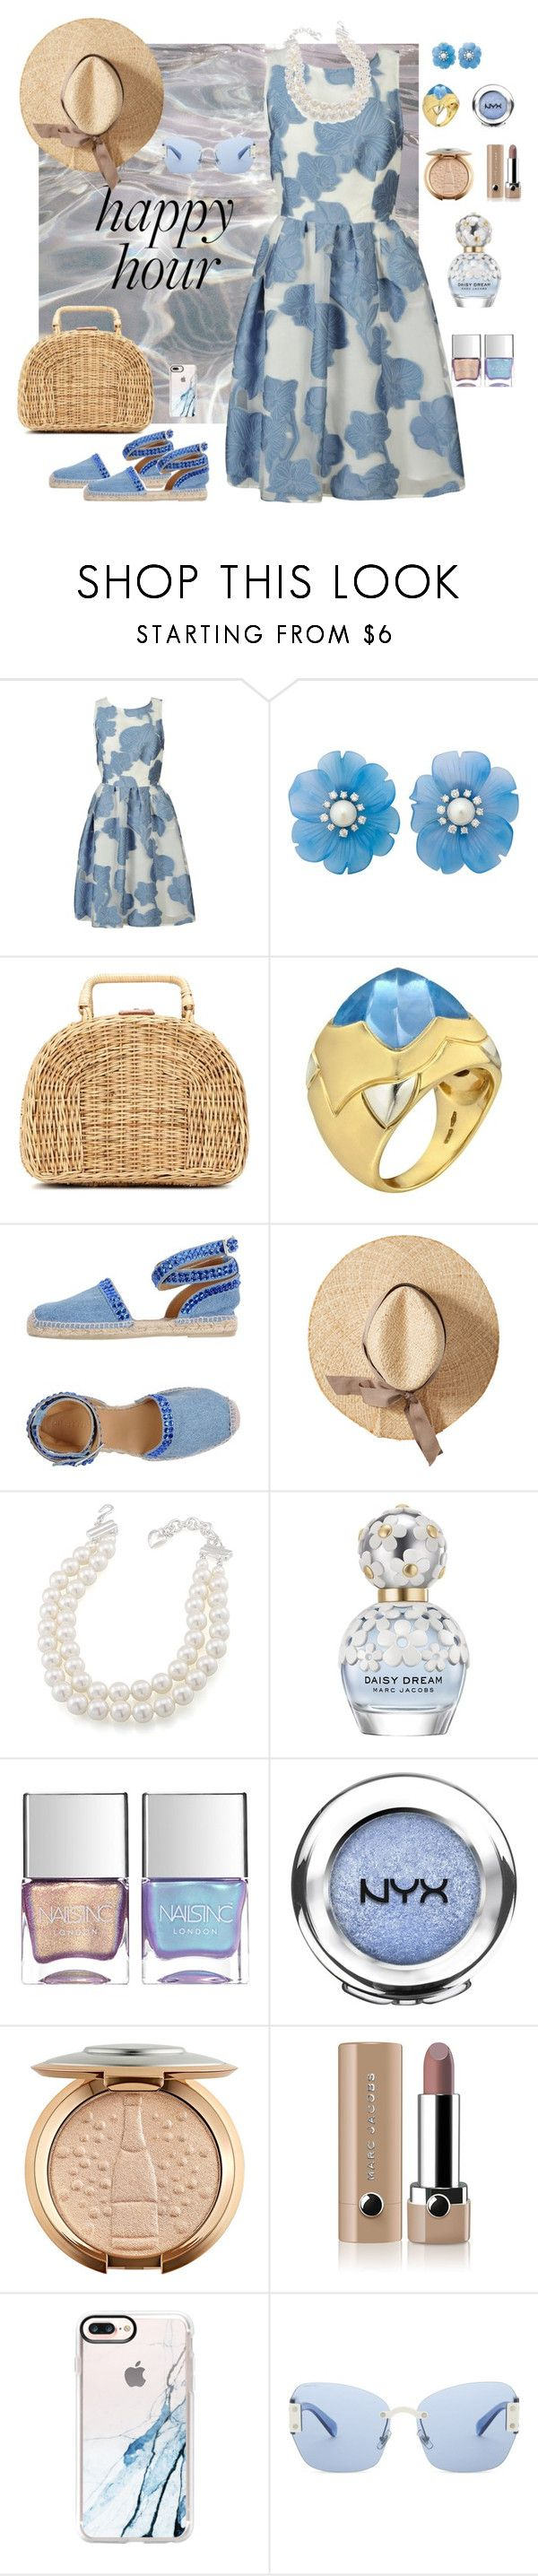 """""""Happy Hour"""" by kerstin-kroeger ❤ liked on Polyvore featuring P.A.R.O.S.H., Helen Ringus, Kayu, Bulgari, Philipp Plein, Carolee, Marc Jacobs, Nails Inc., NYX and Casetify"""